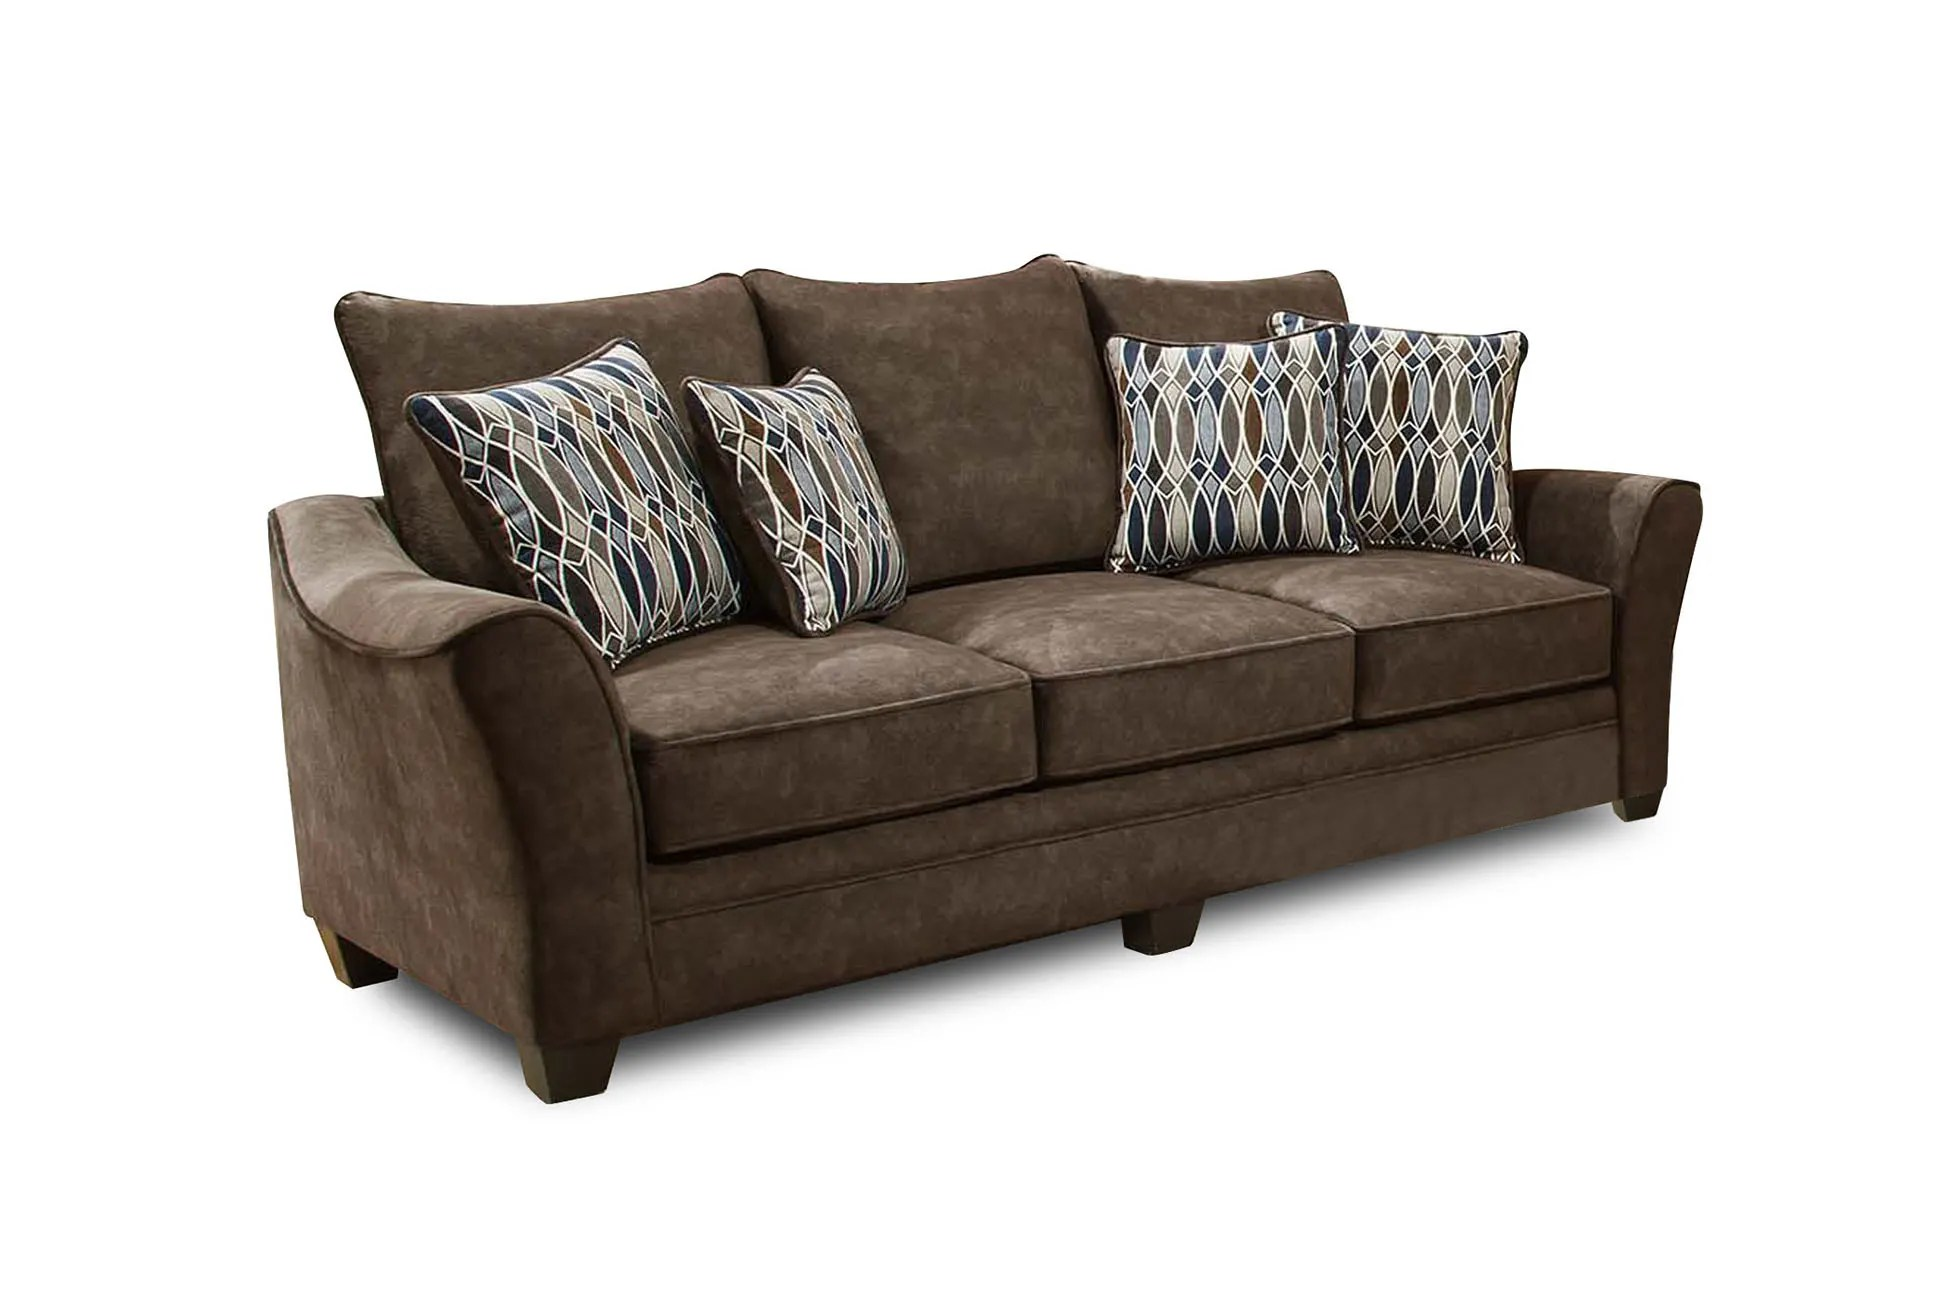 Made Sofa Reviews Chelsea Home 183853 2280 S Ab